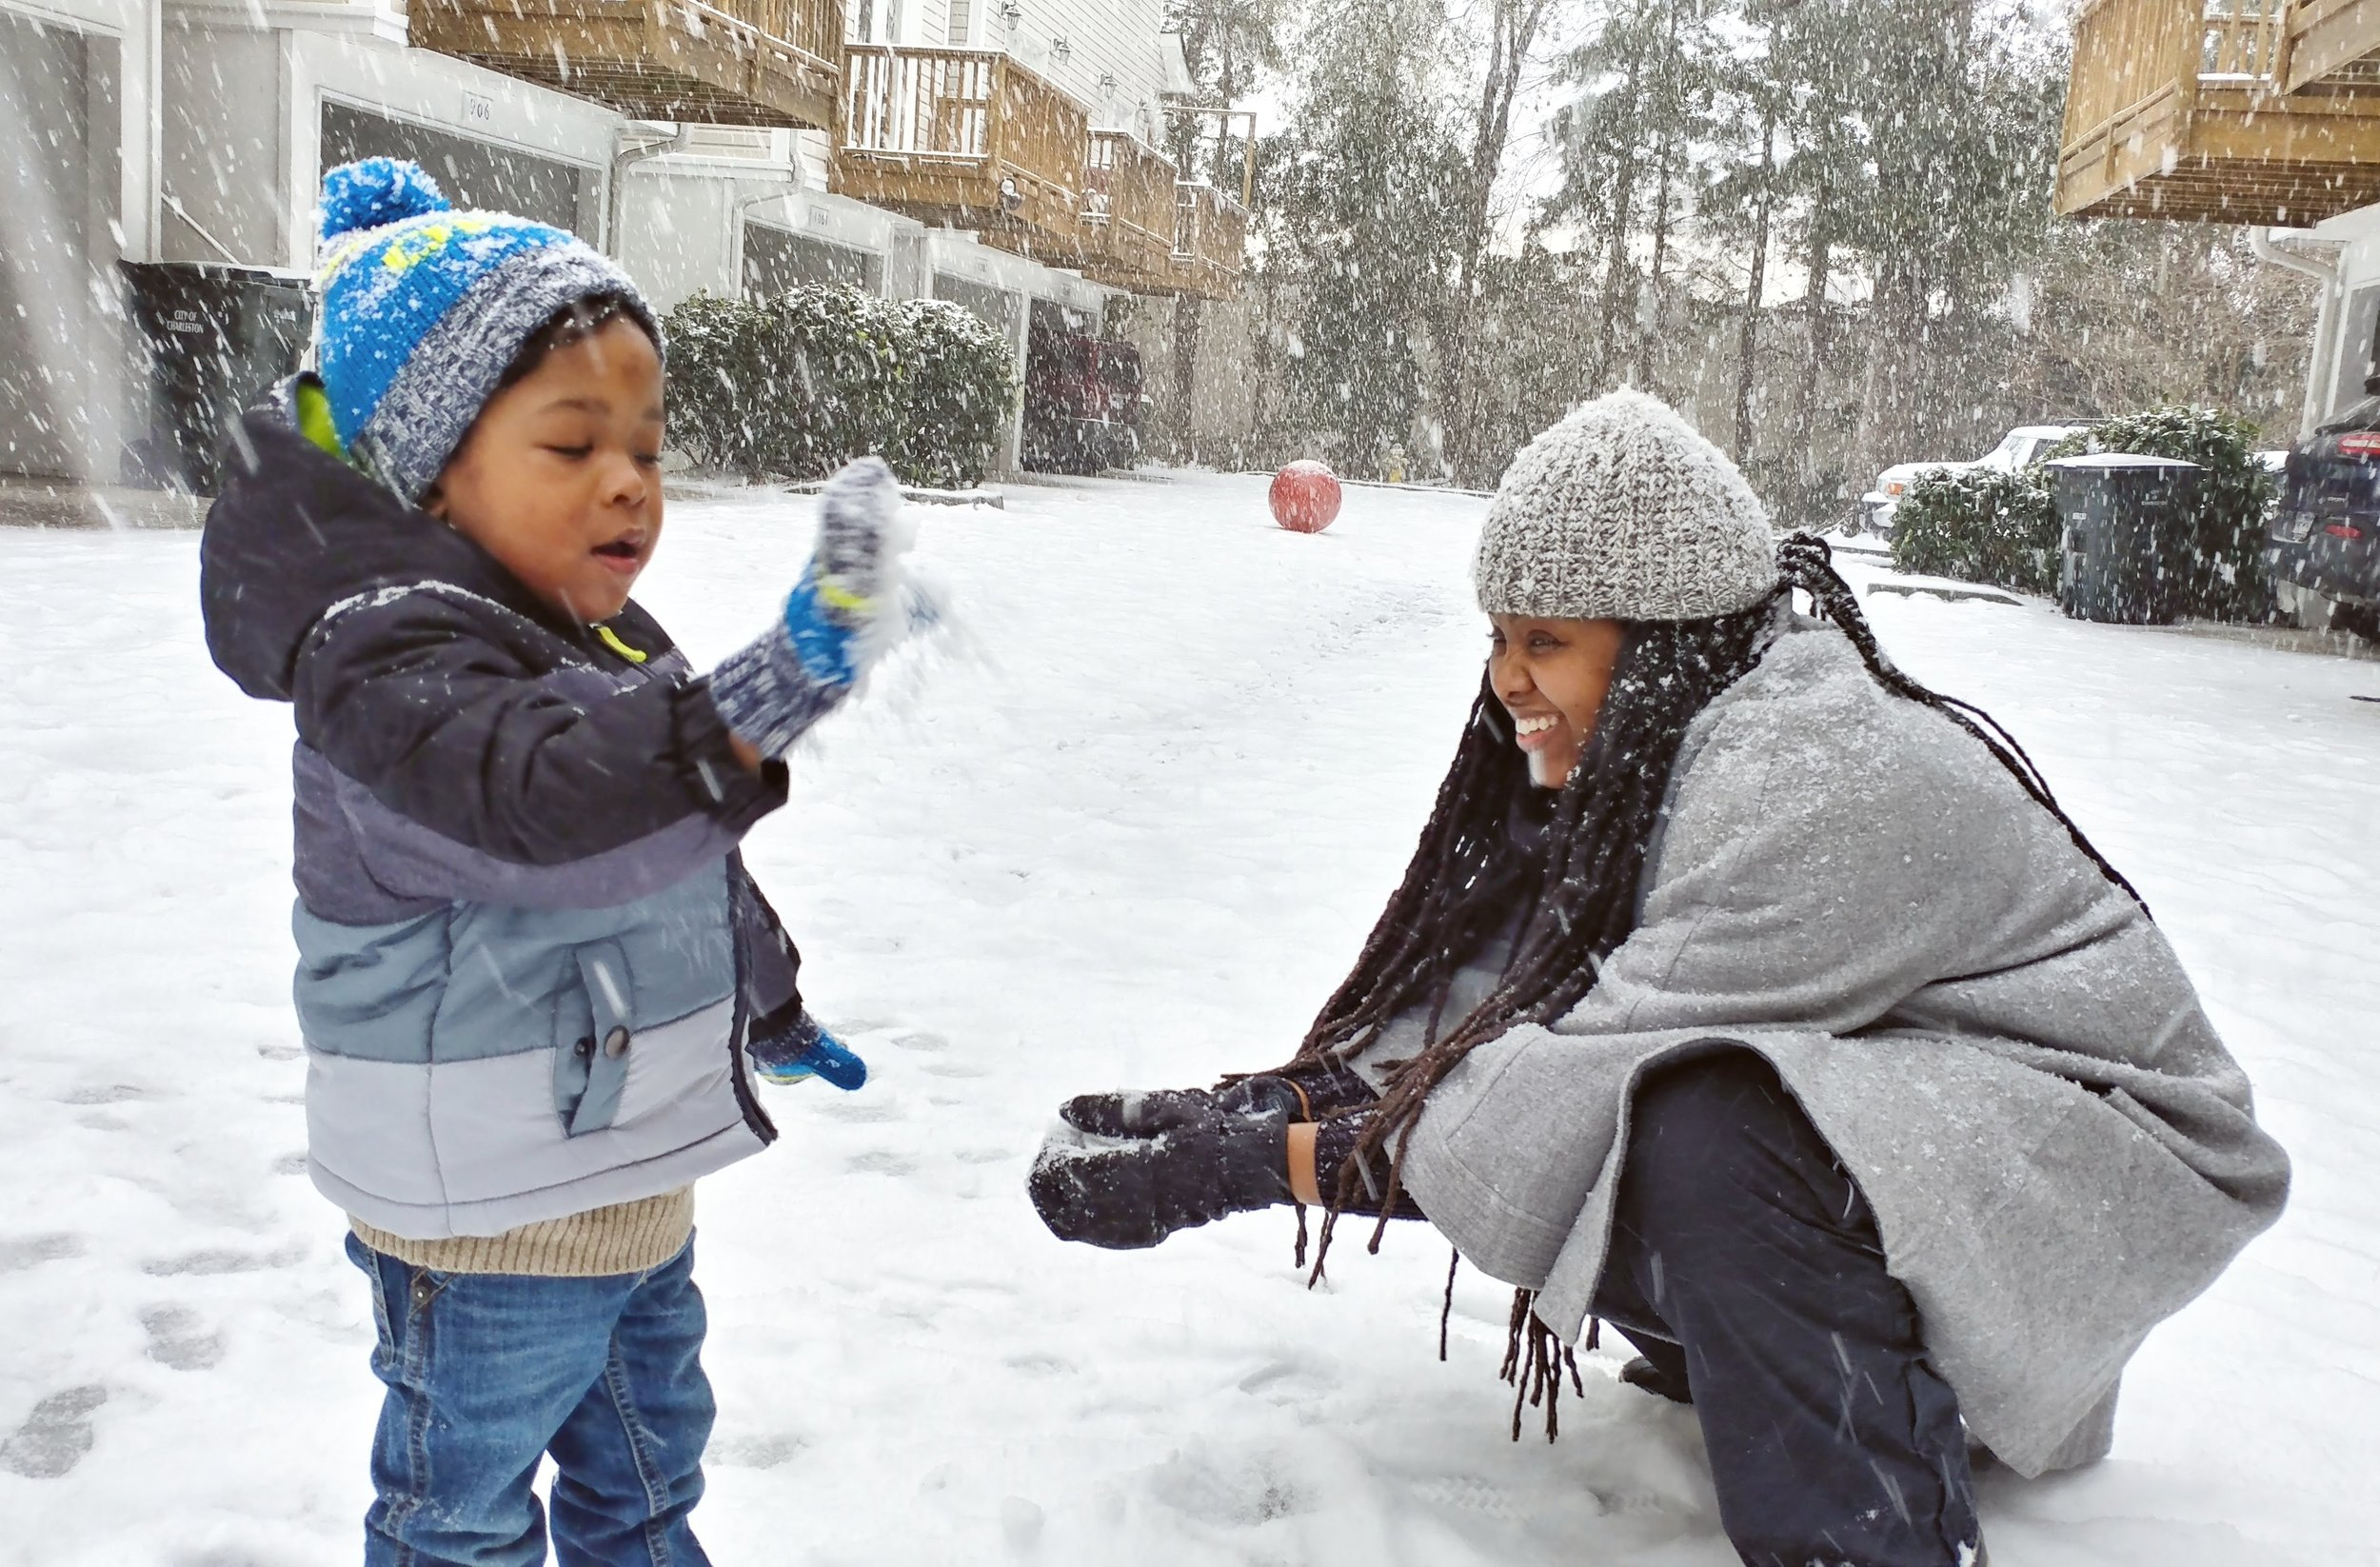 My Wife and Son on a Snow Day. Charleston, SC (Jan 2018)